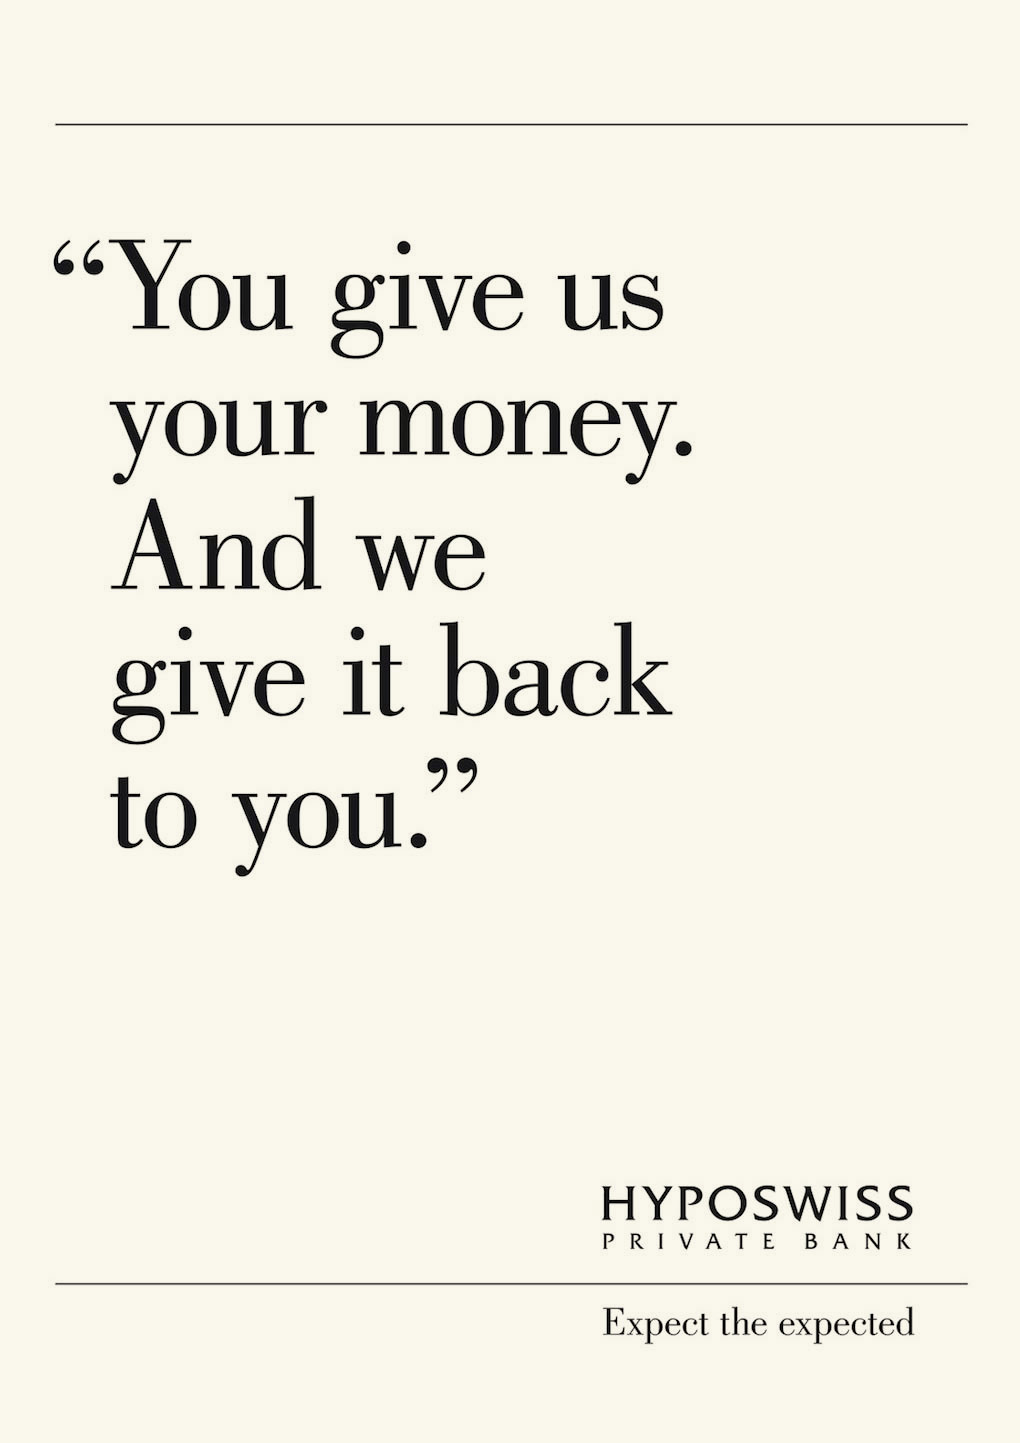 Hypo_imagePrint_GiveMoney